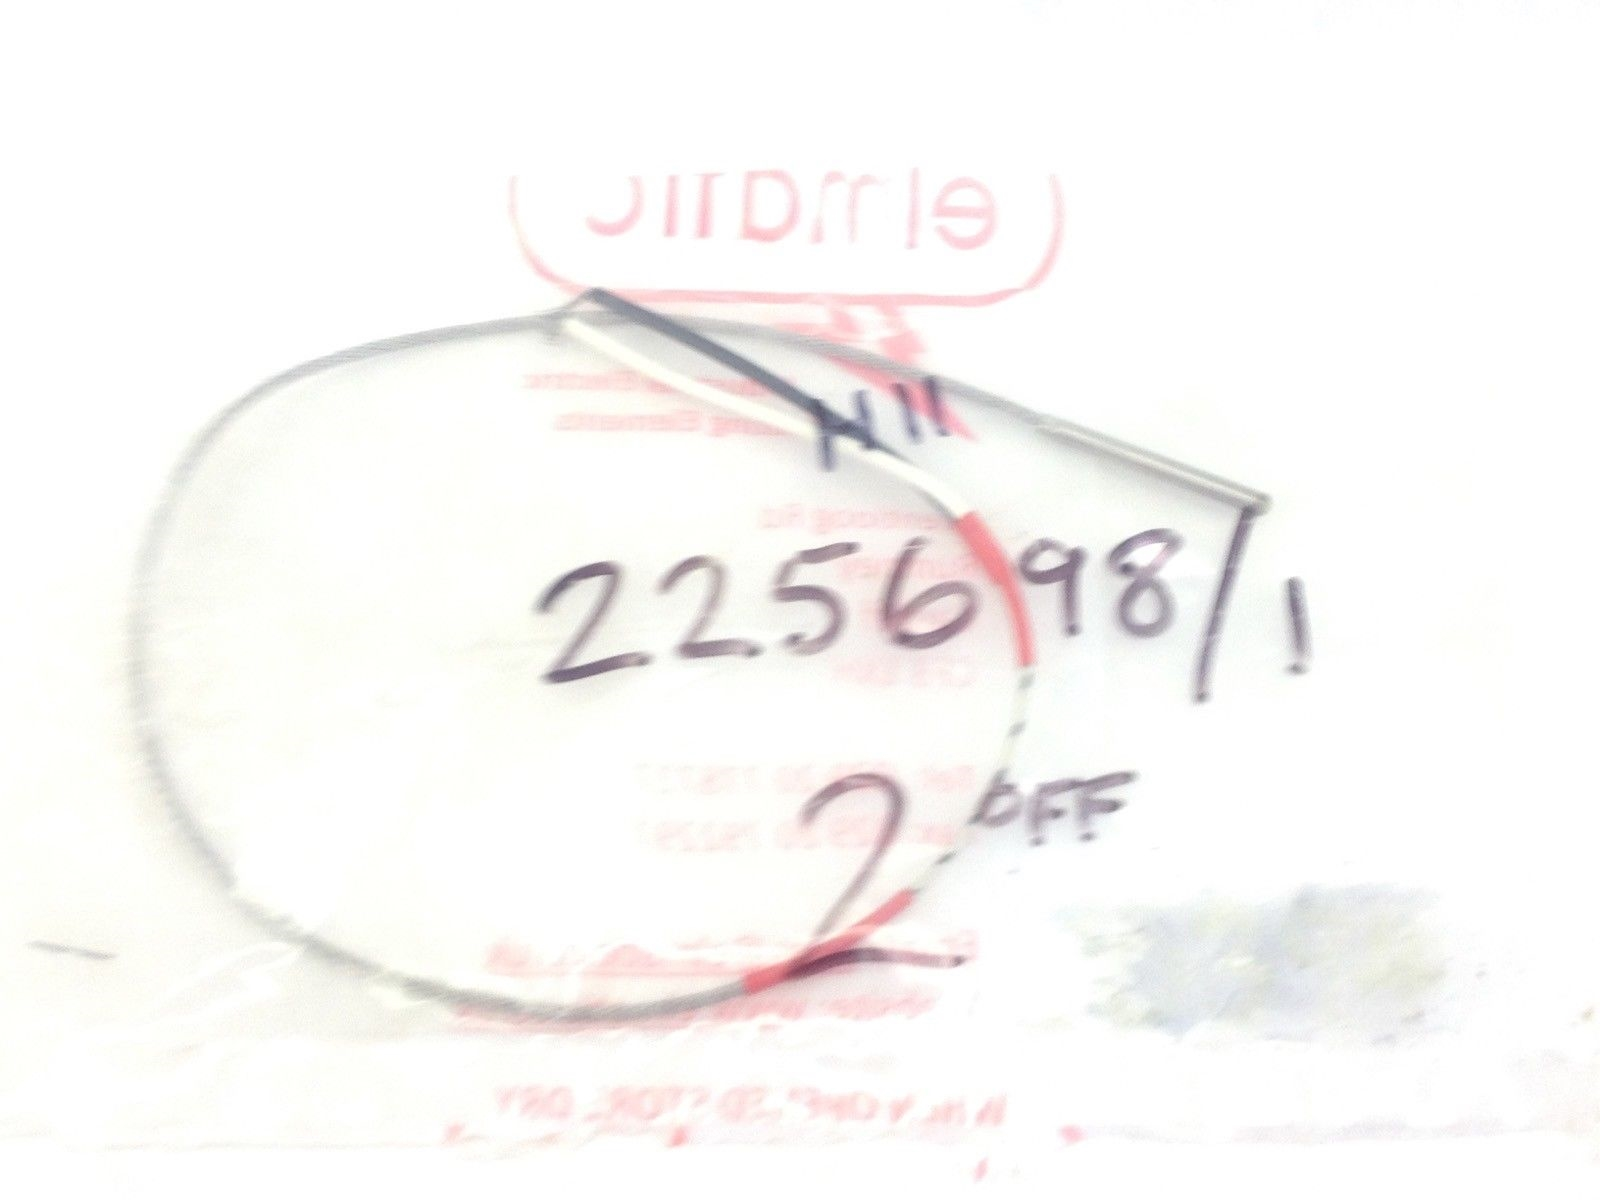 ELEMATIC 225698/1 THERMOCOUPLE (H352) 2